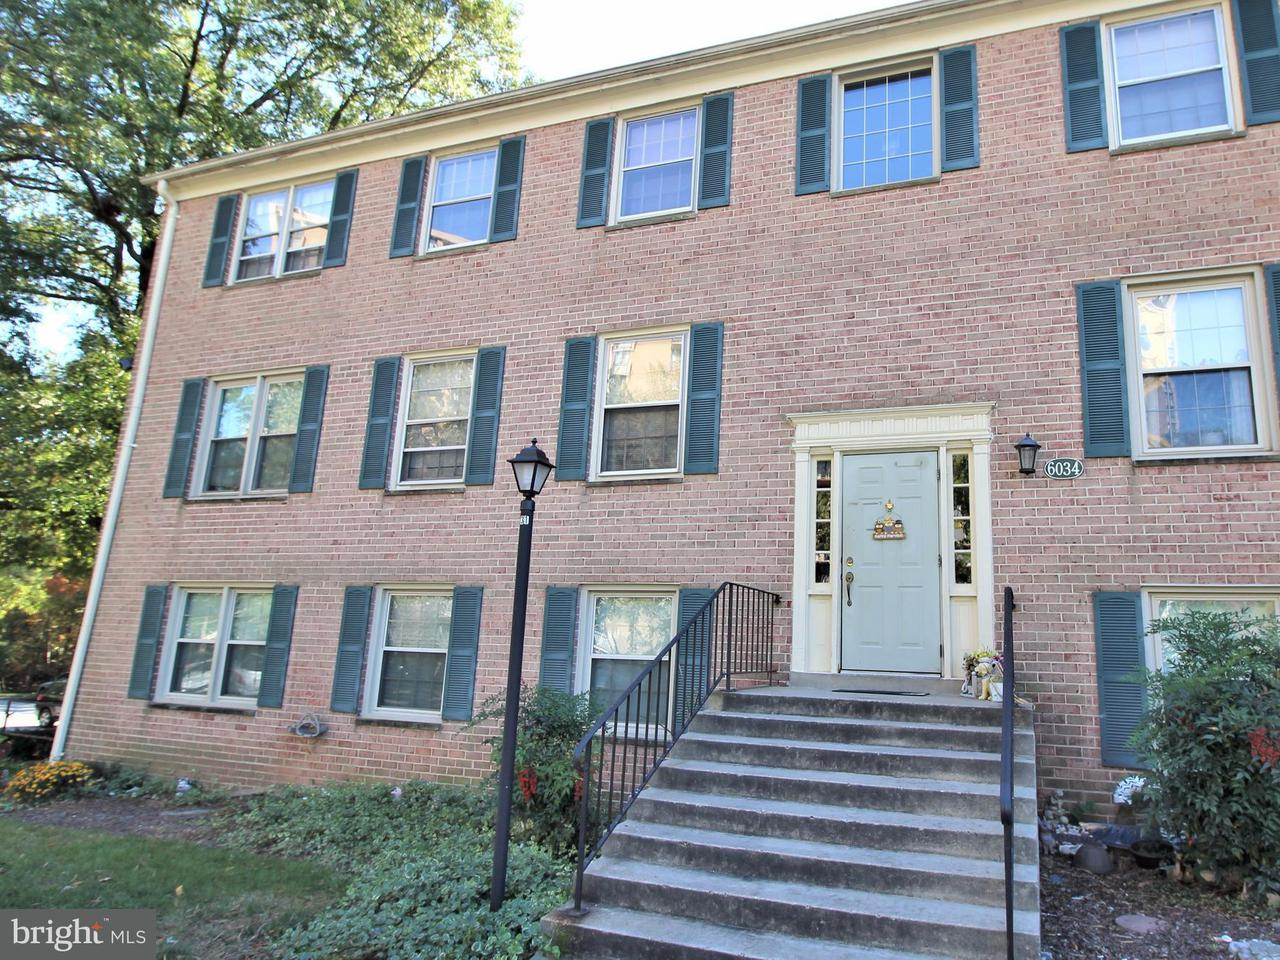 Condominium for Rent at 6034 Westchester Park Dr #t College Park, Maryland 20740 United States